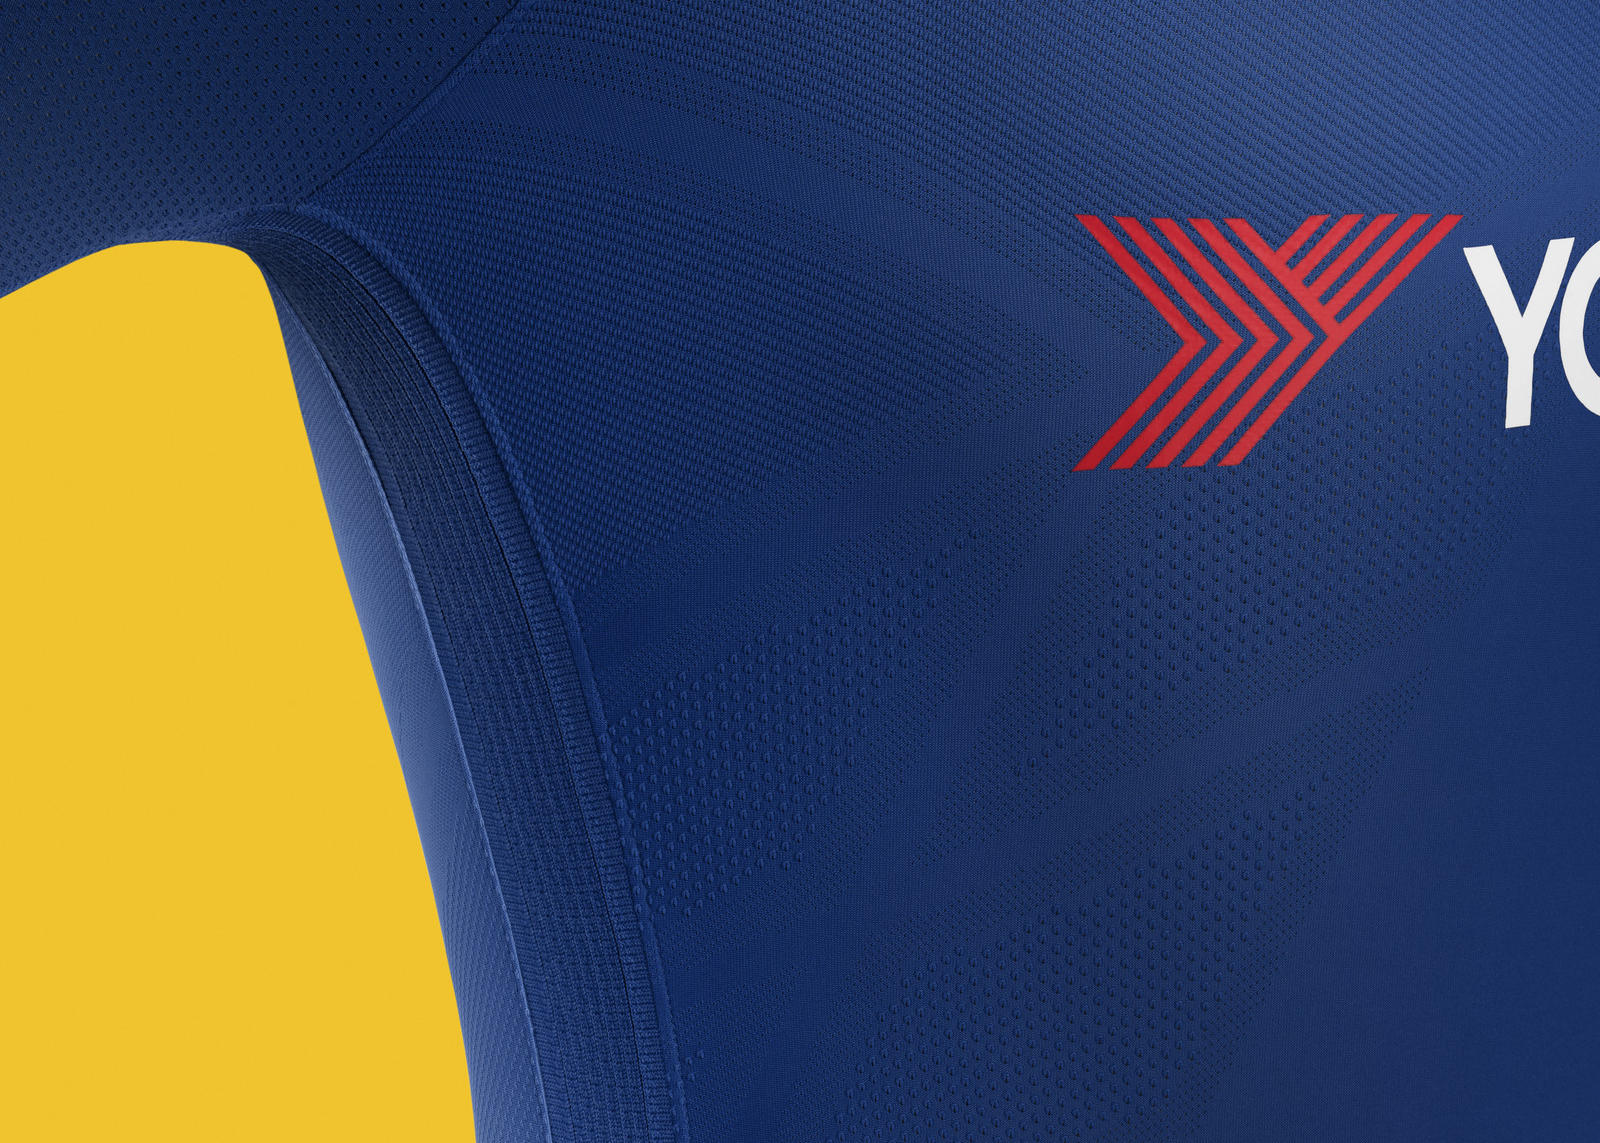 5de38c1f0 Chelsea FC and Nike Join Forces To Unveil Home and Away Kits - Nike News